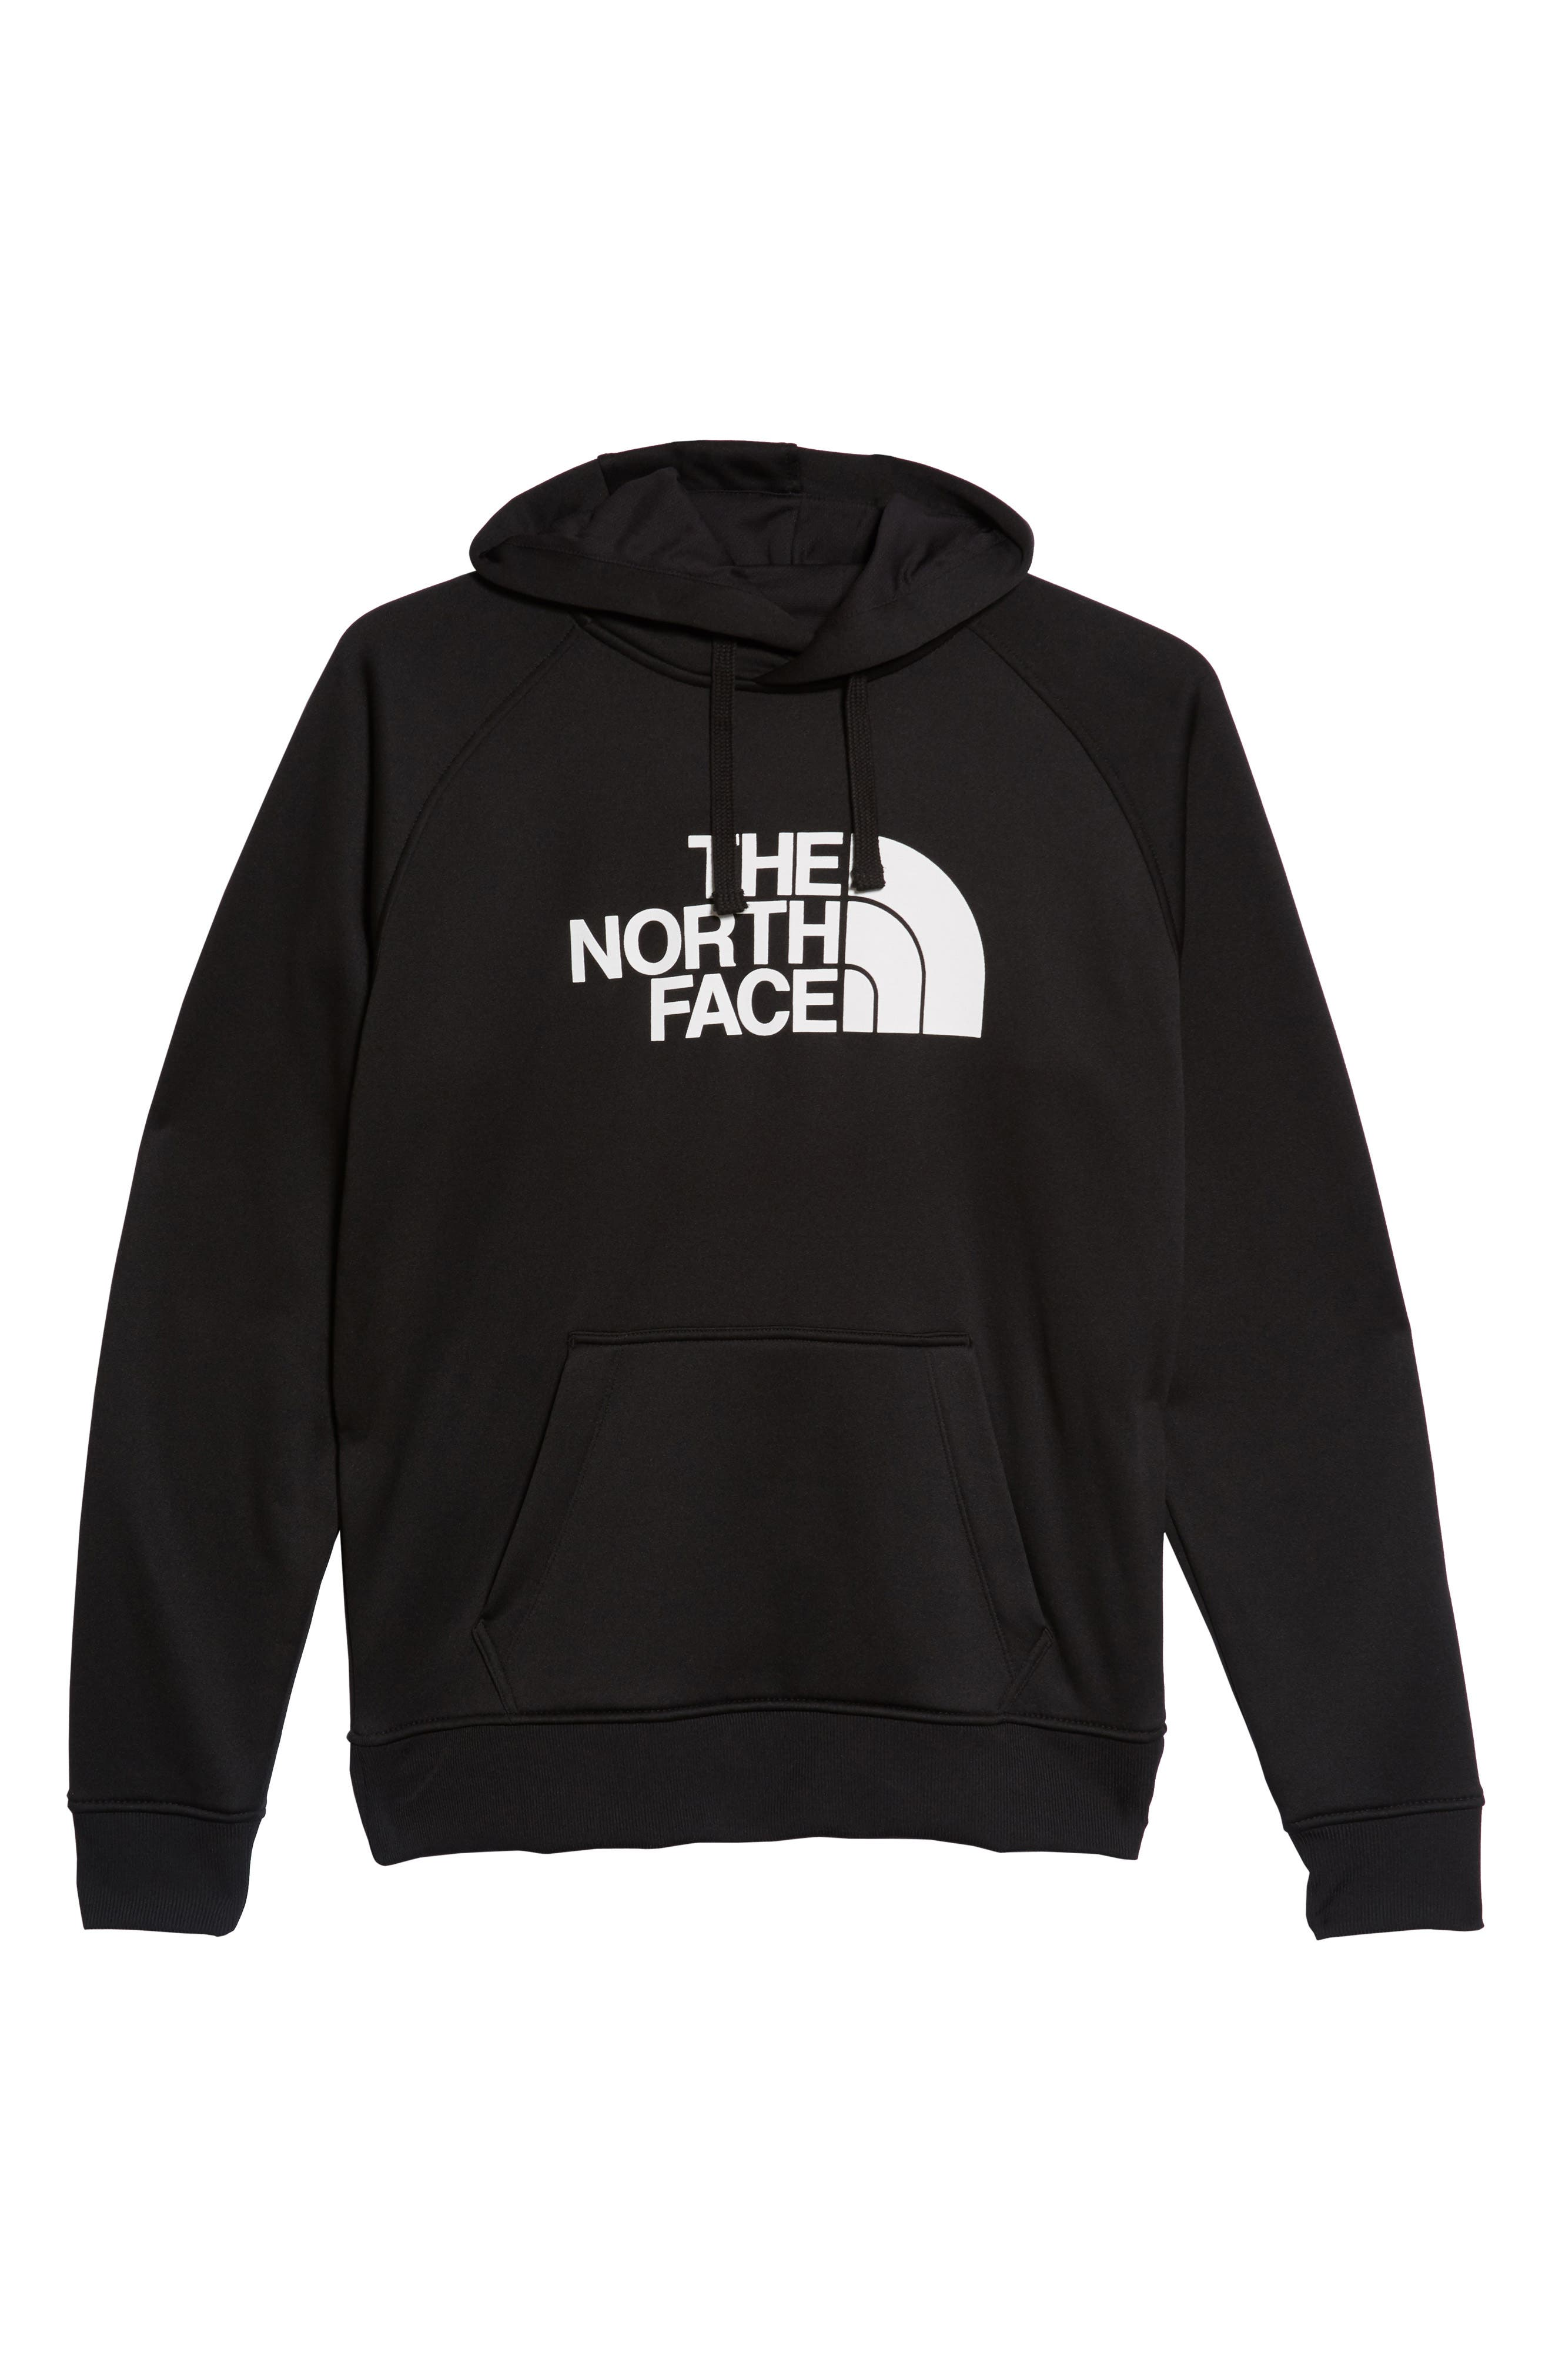 THE NORTH FACE,                             Mount Modern Hoodie,                             Alternate thumbnail 6, color,                             001